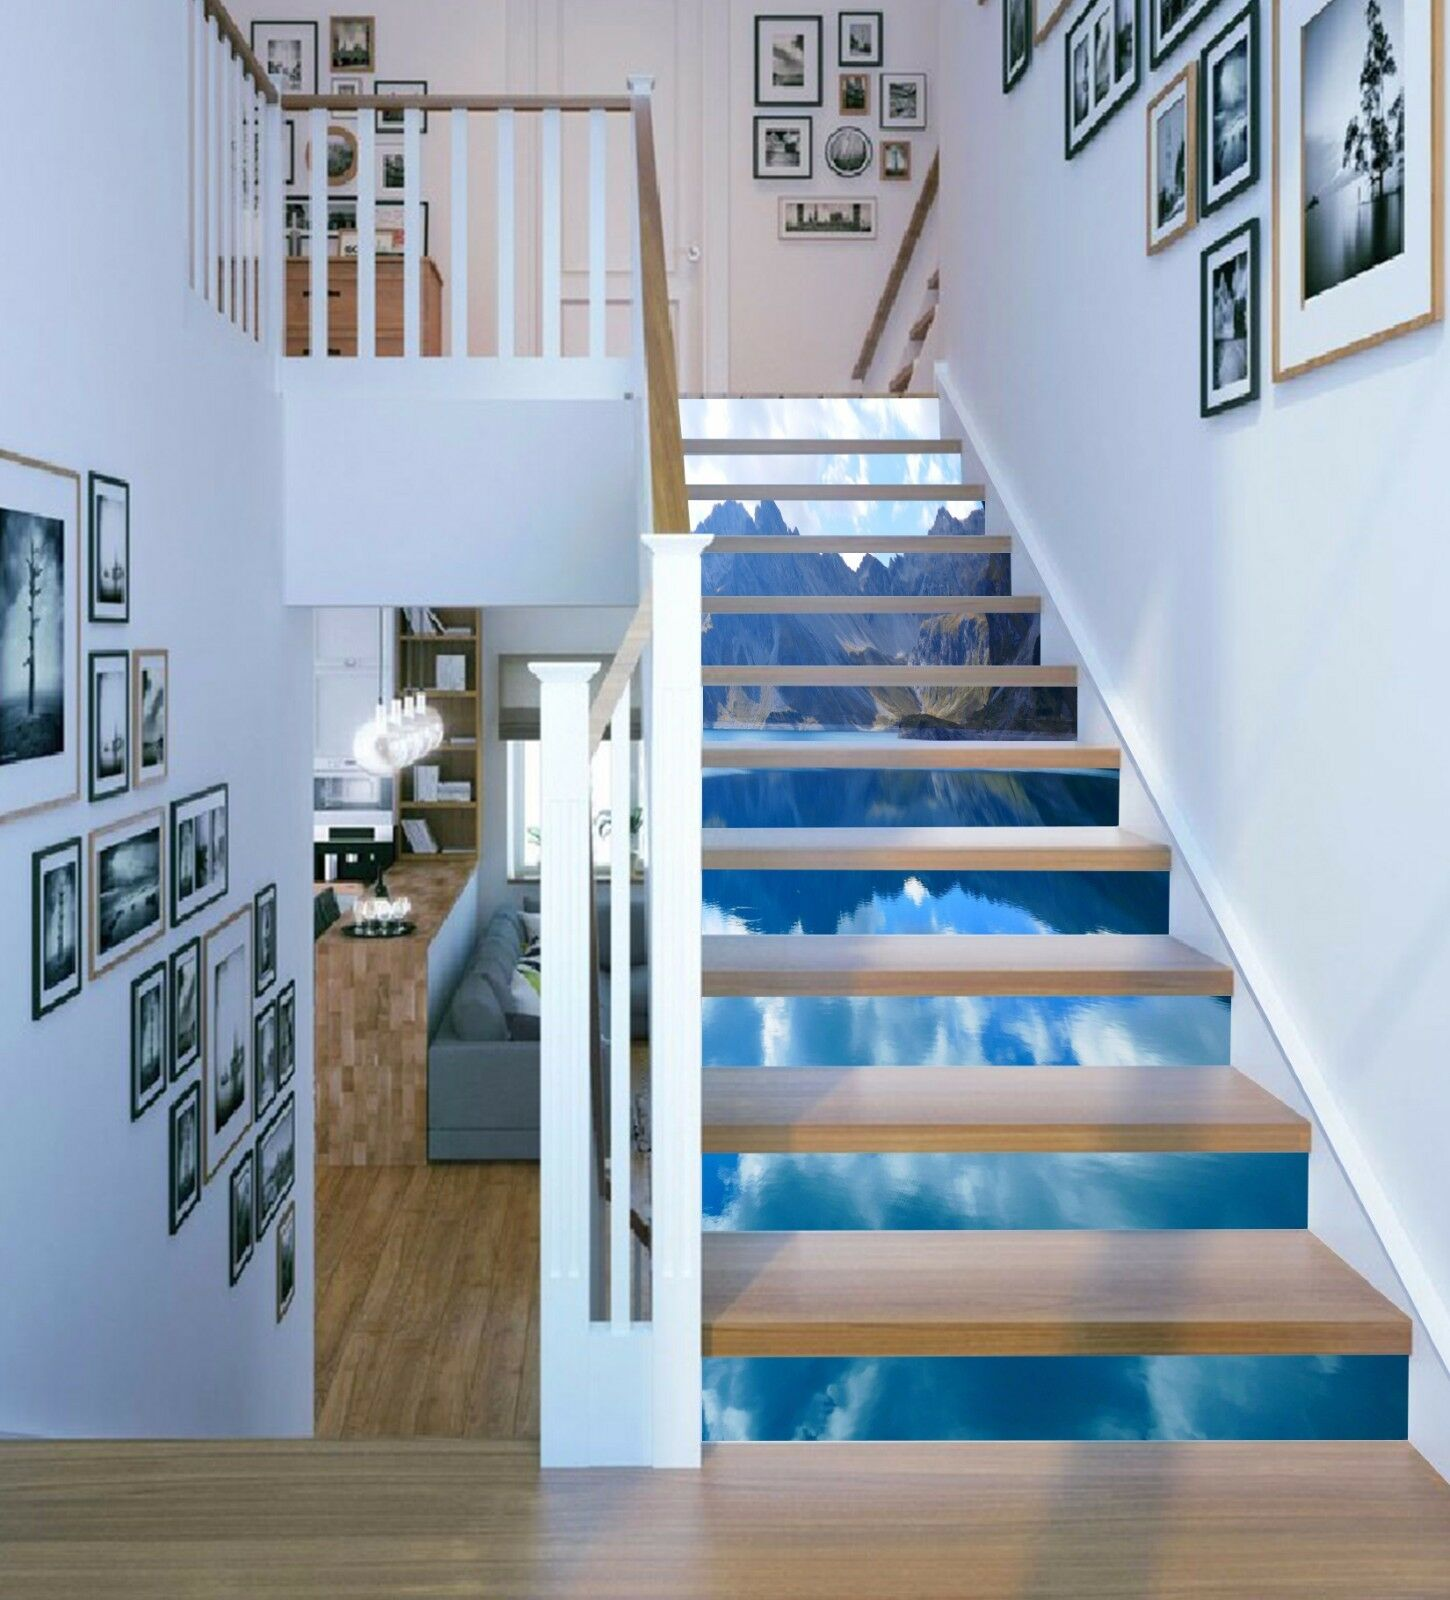 3D 3D 3D Sky Lake 7 Stair Risers Decoration Photo Mural Vinyl Decal Wallpaper UK a8a6b4